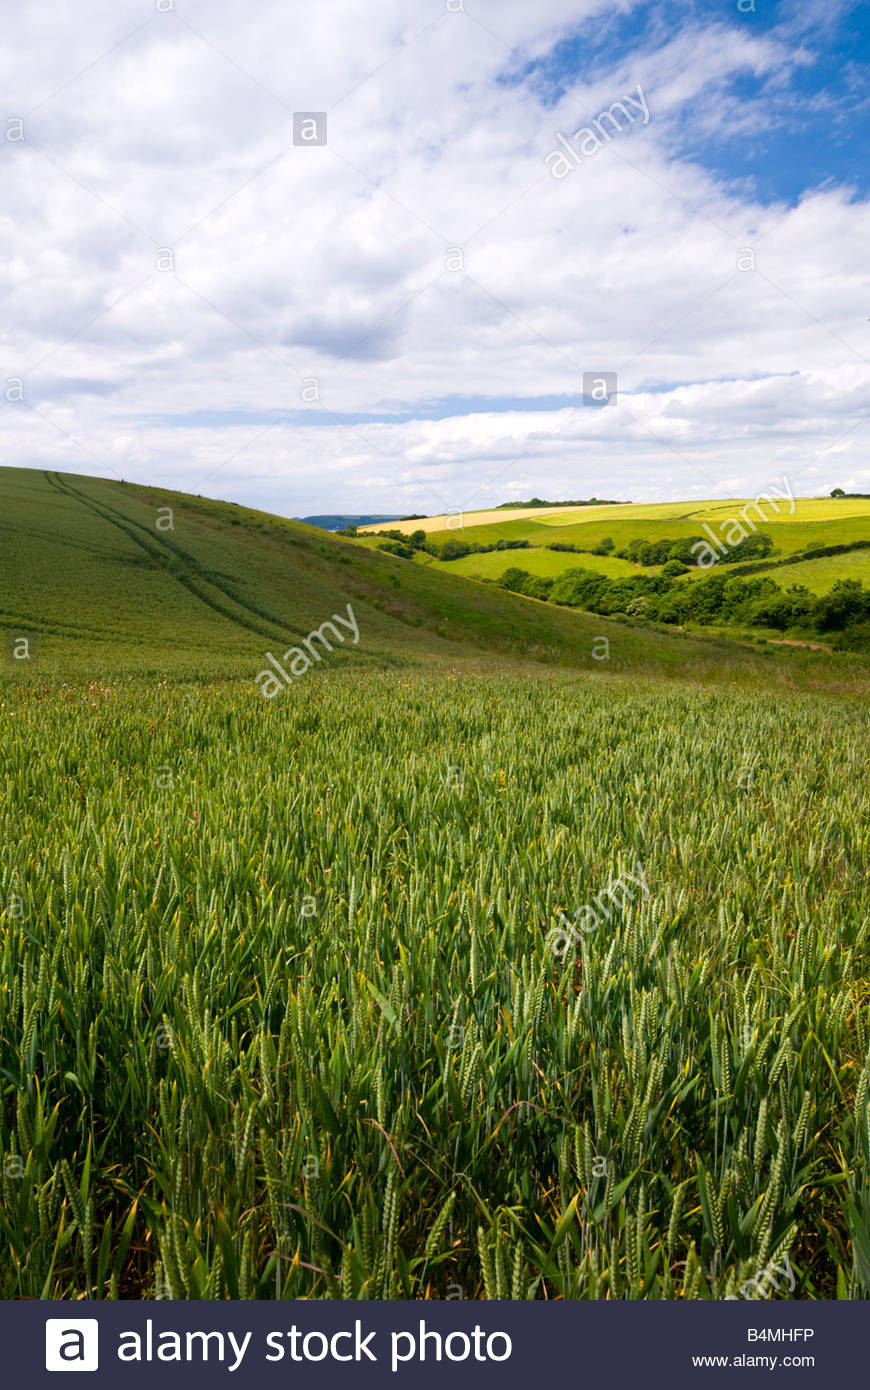 Field of wheat in early Summer, near Plymouth, South Devon, England. - Stock Image